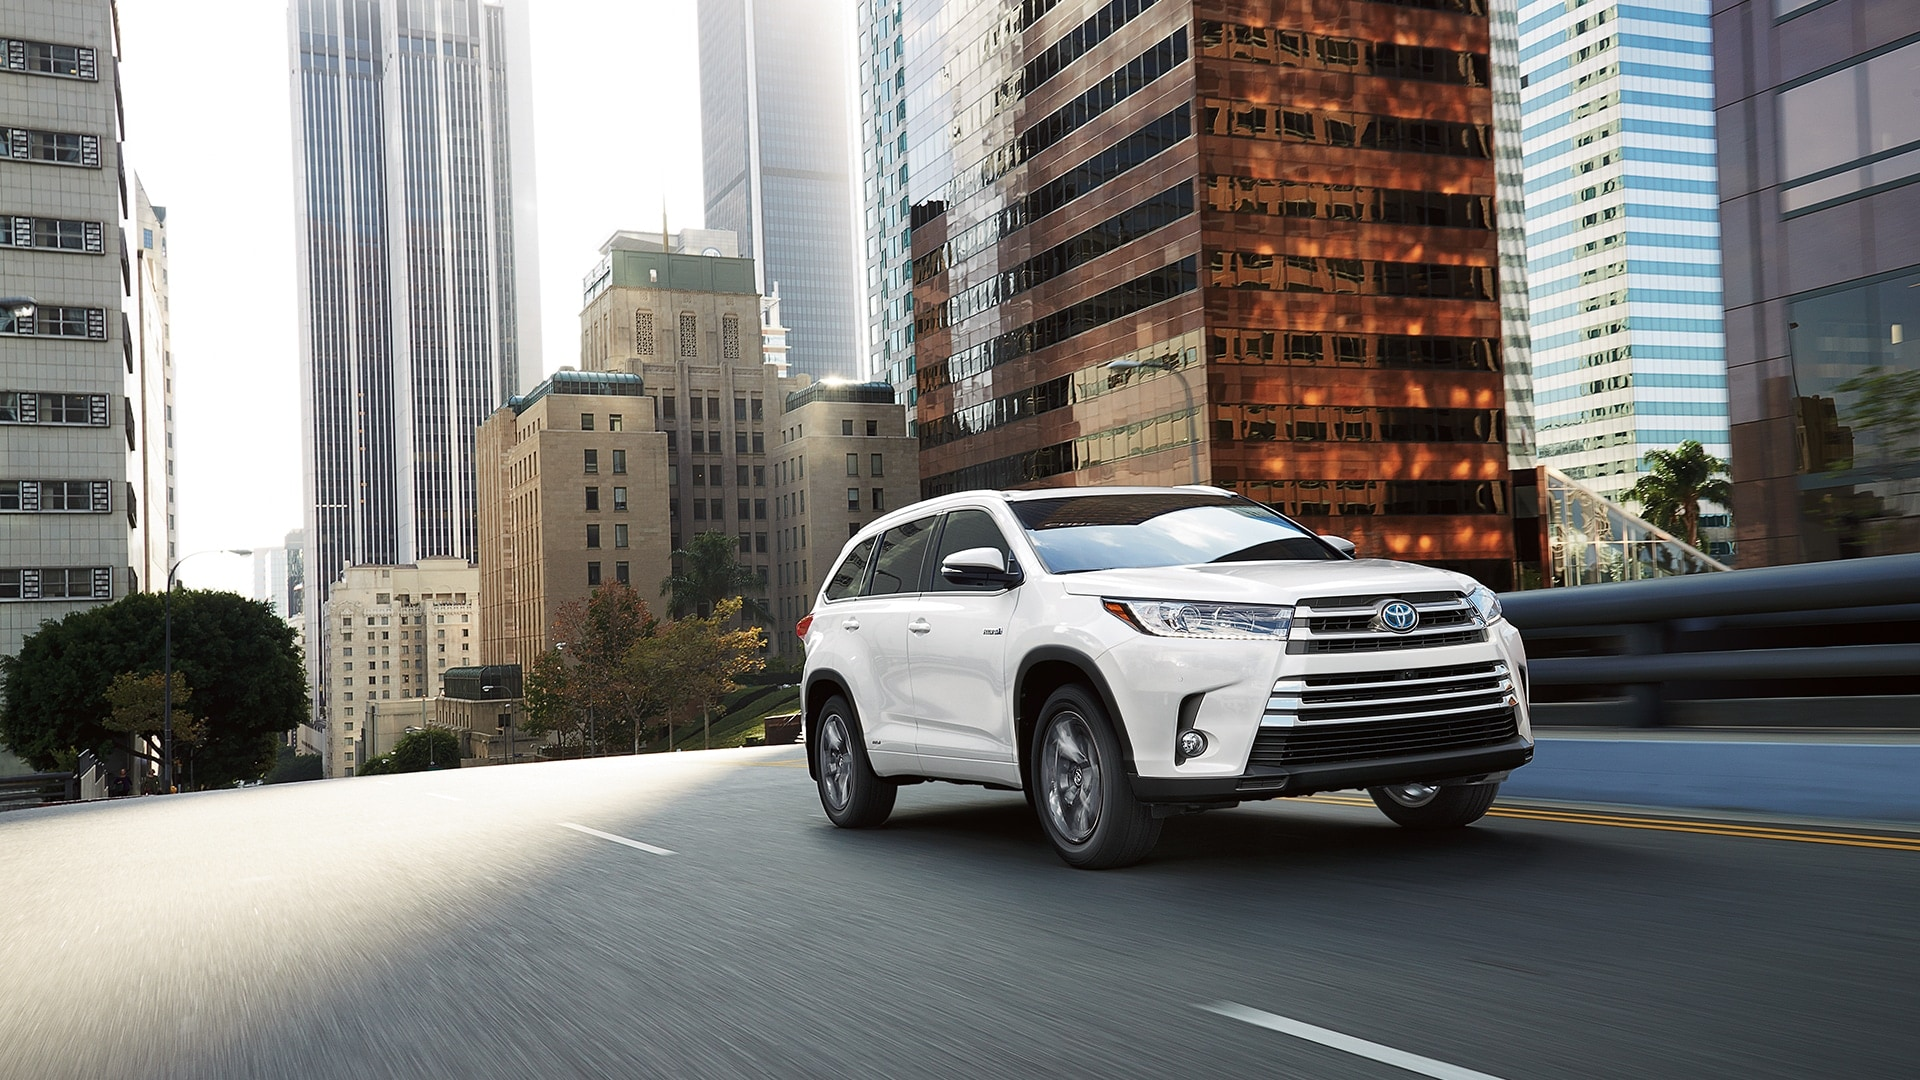 Toyota Highlander Owners Manual: Using a bluetoothphone